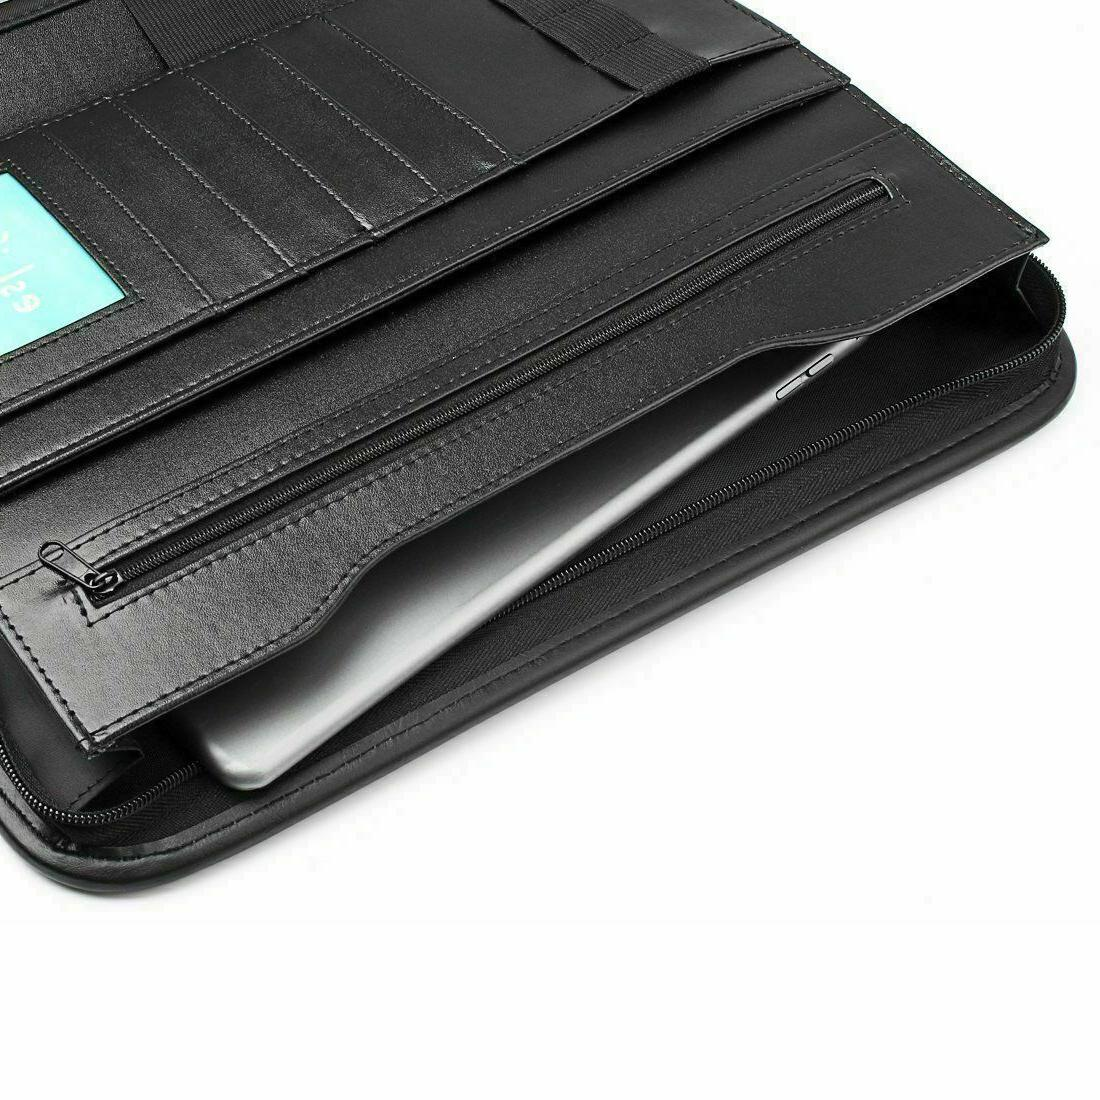 Padfolio Zippered Notebook Organizer